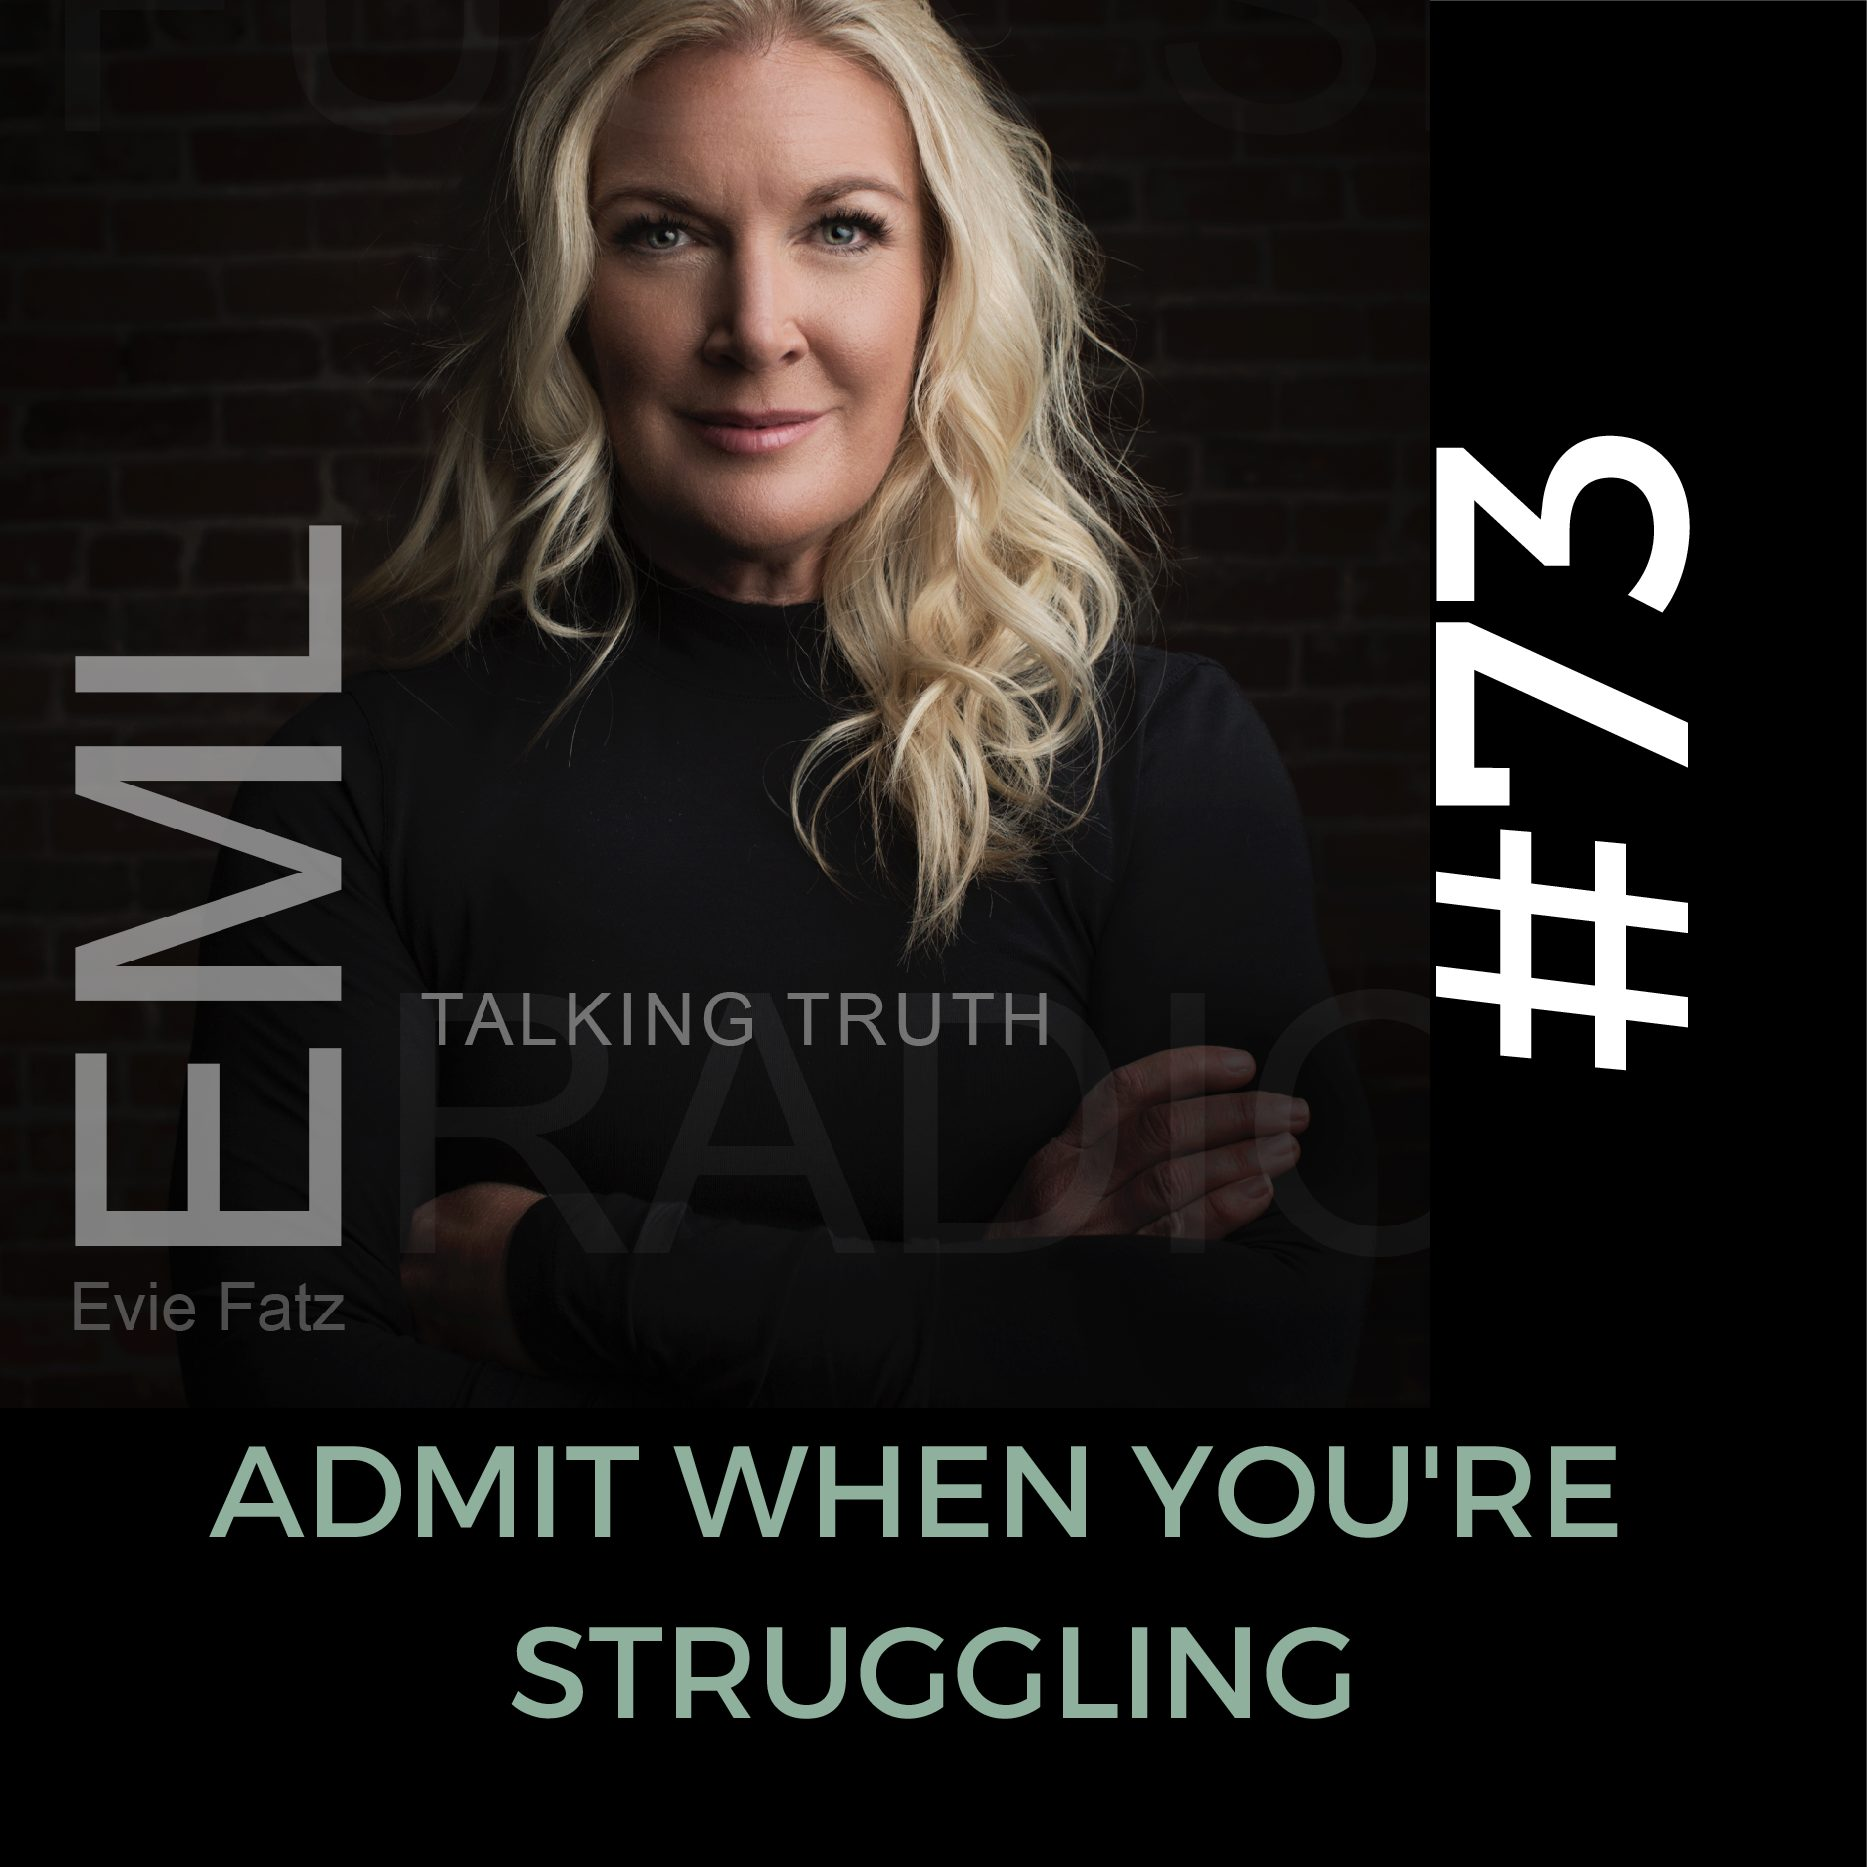 EP #73 Admit When You're Struggling